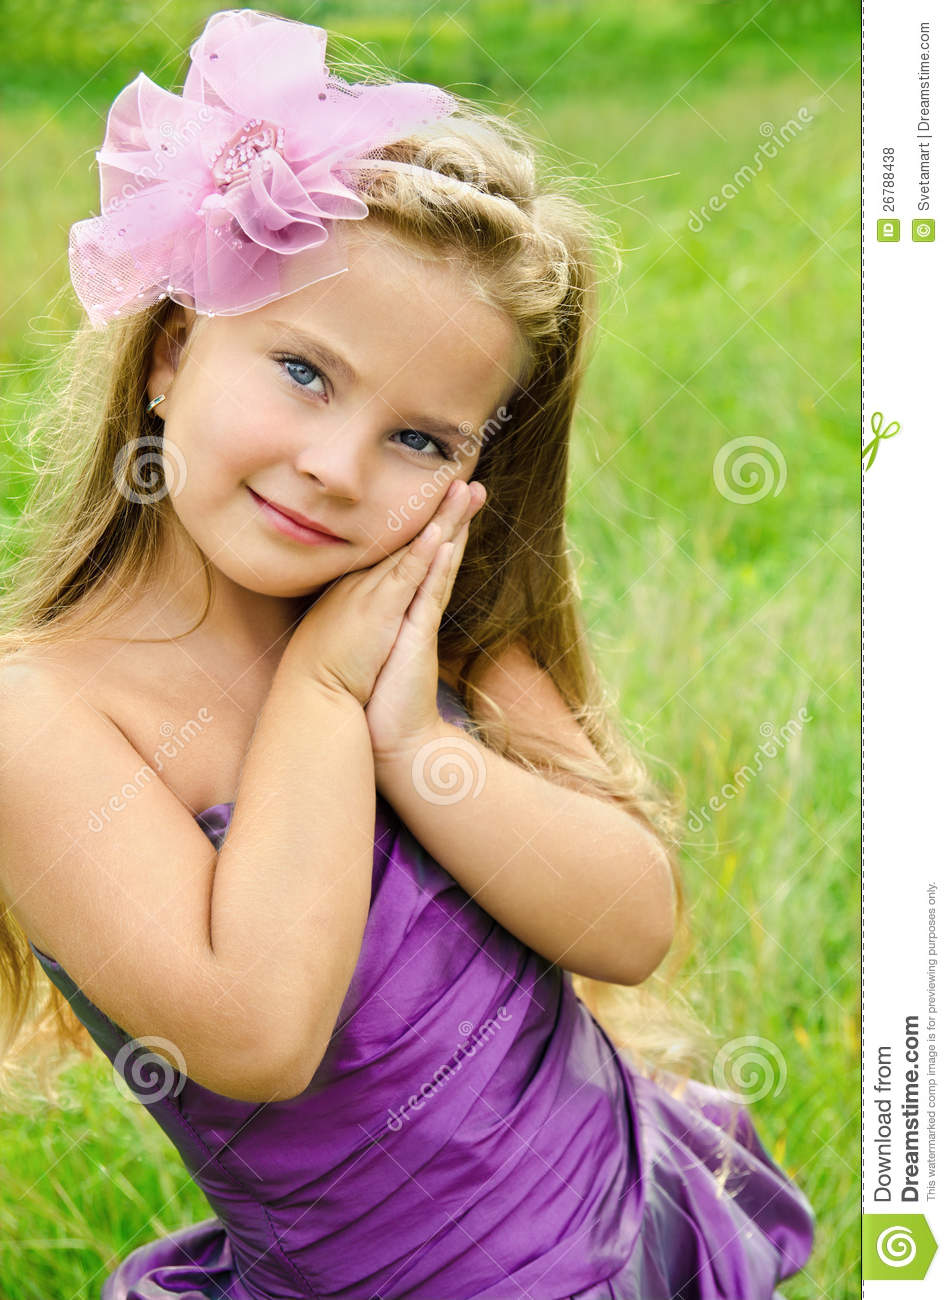 Little Girls Nails And Girls On Pinterest: Portrait Of Cute Little Girl In Princess Dress Stock Photo